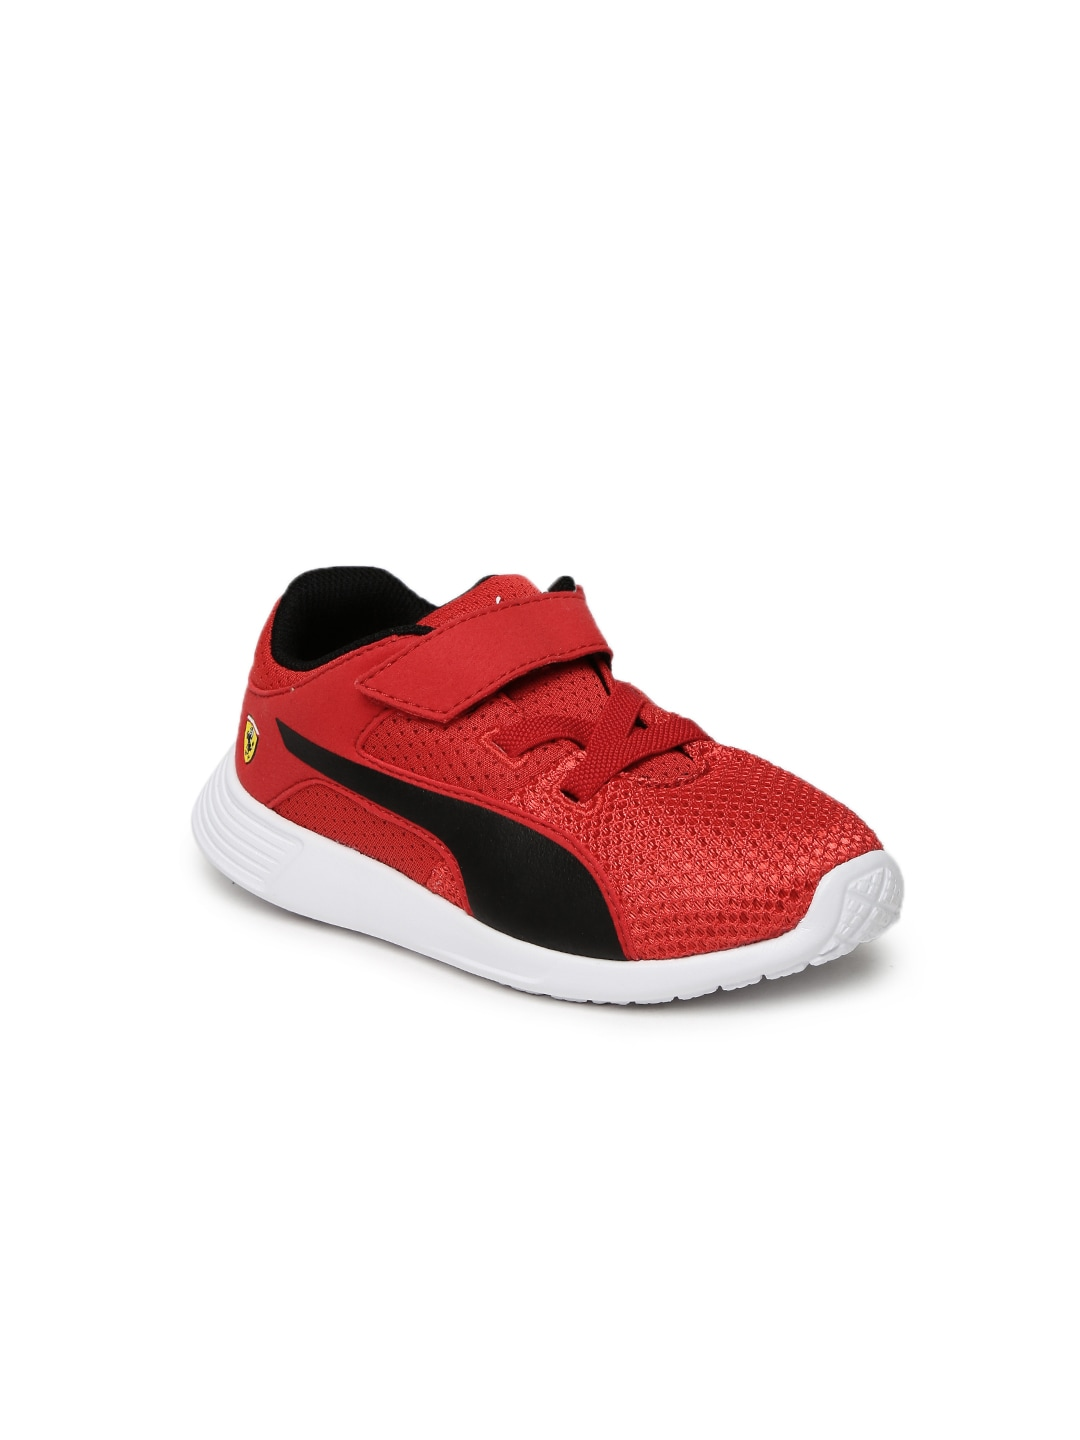 025b440a3d4 Boys Casual Shoes- Buy Casual Shoes for Boys online in India